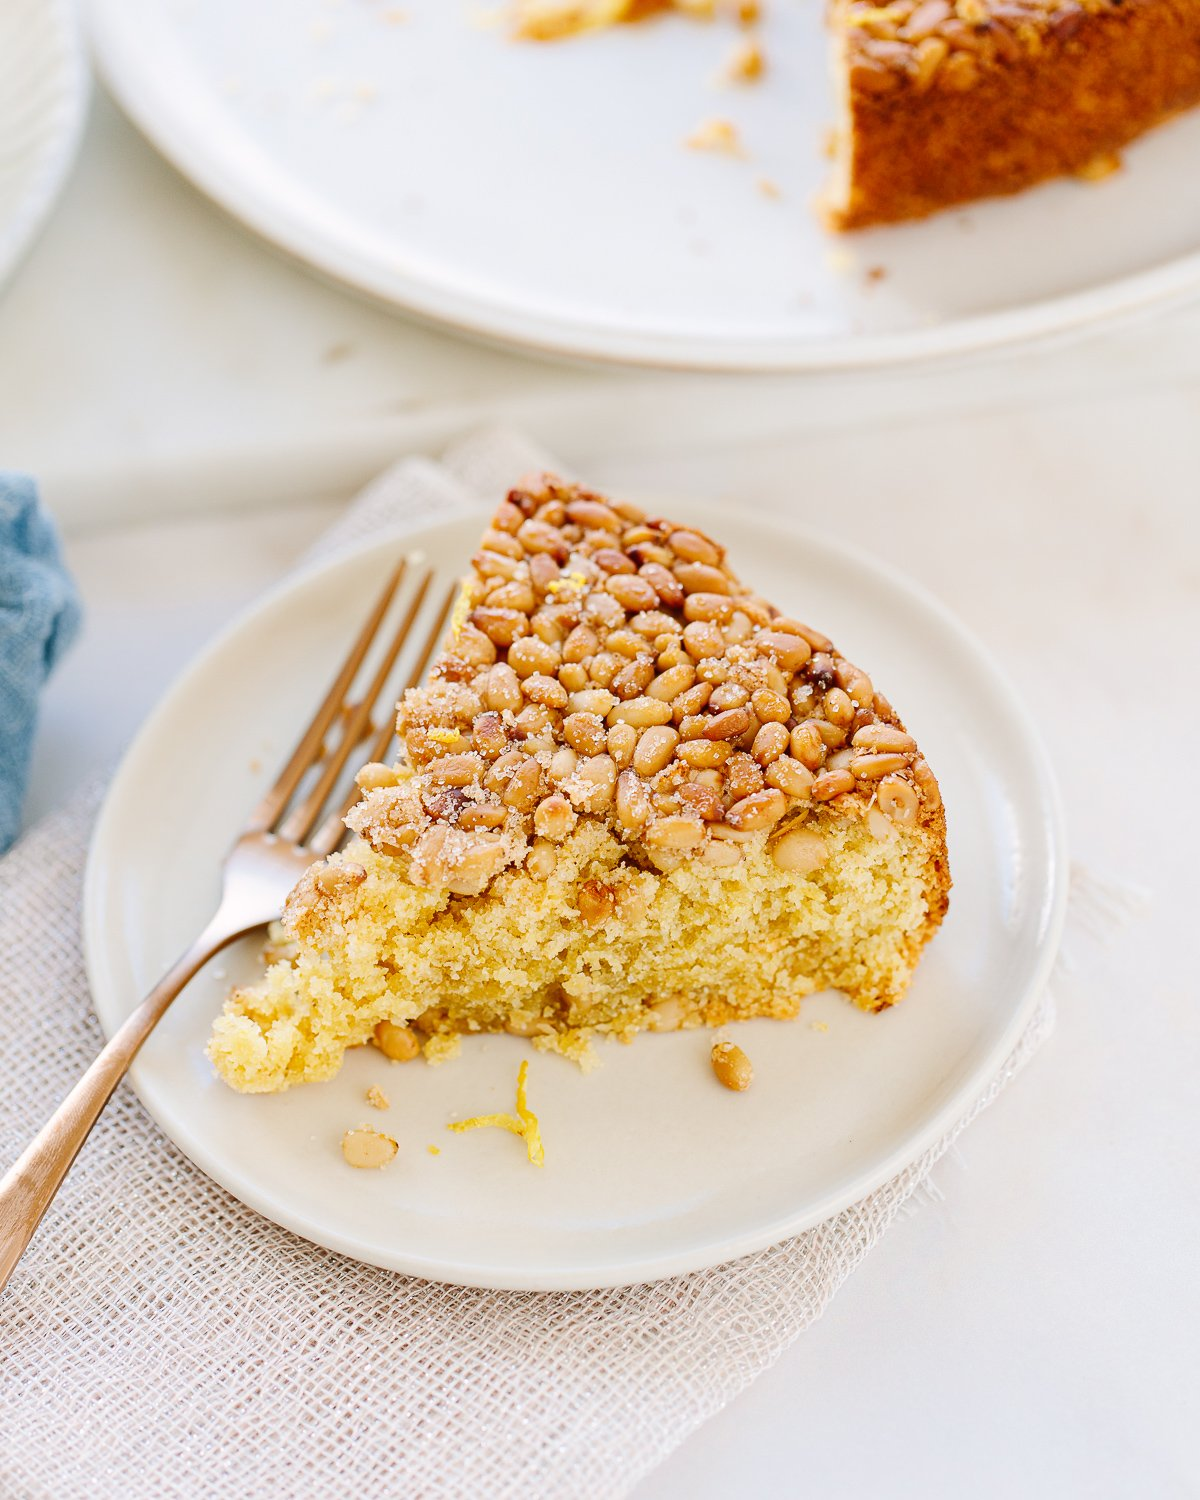 A wedge slice of lemon cake topped with pine nuts, on a cake plate with a fork on the side.